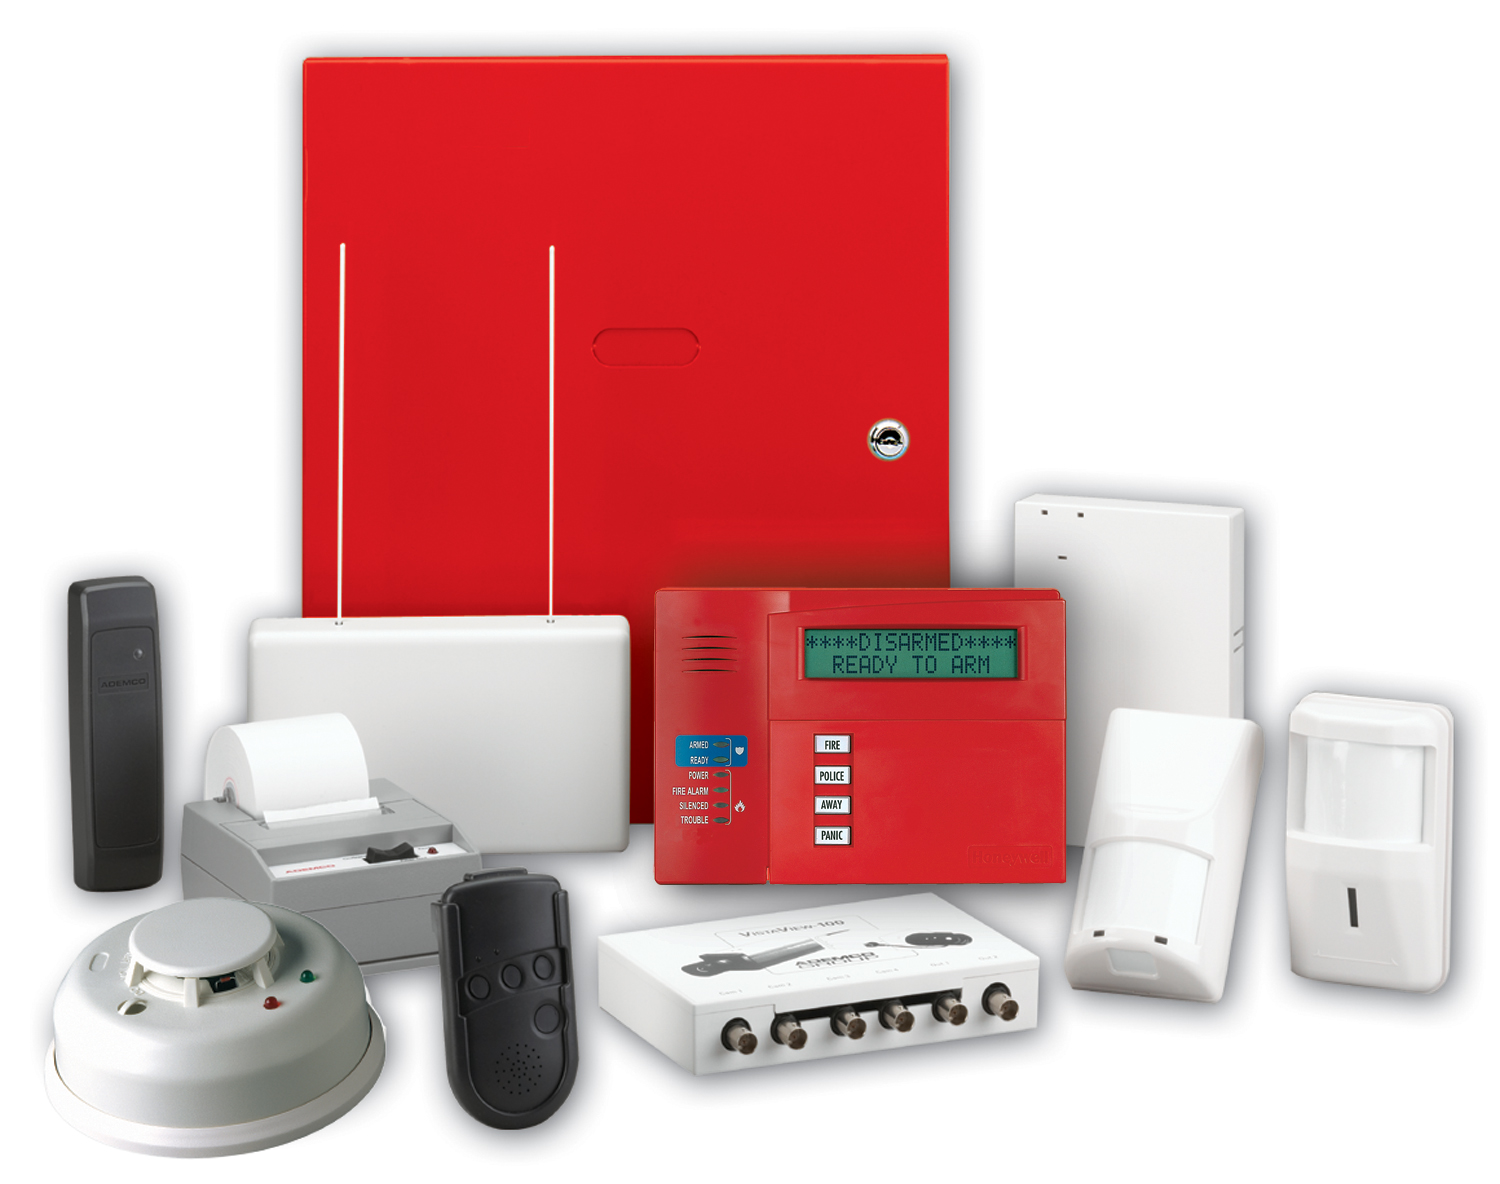 Equipment for home security system and monitoring